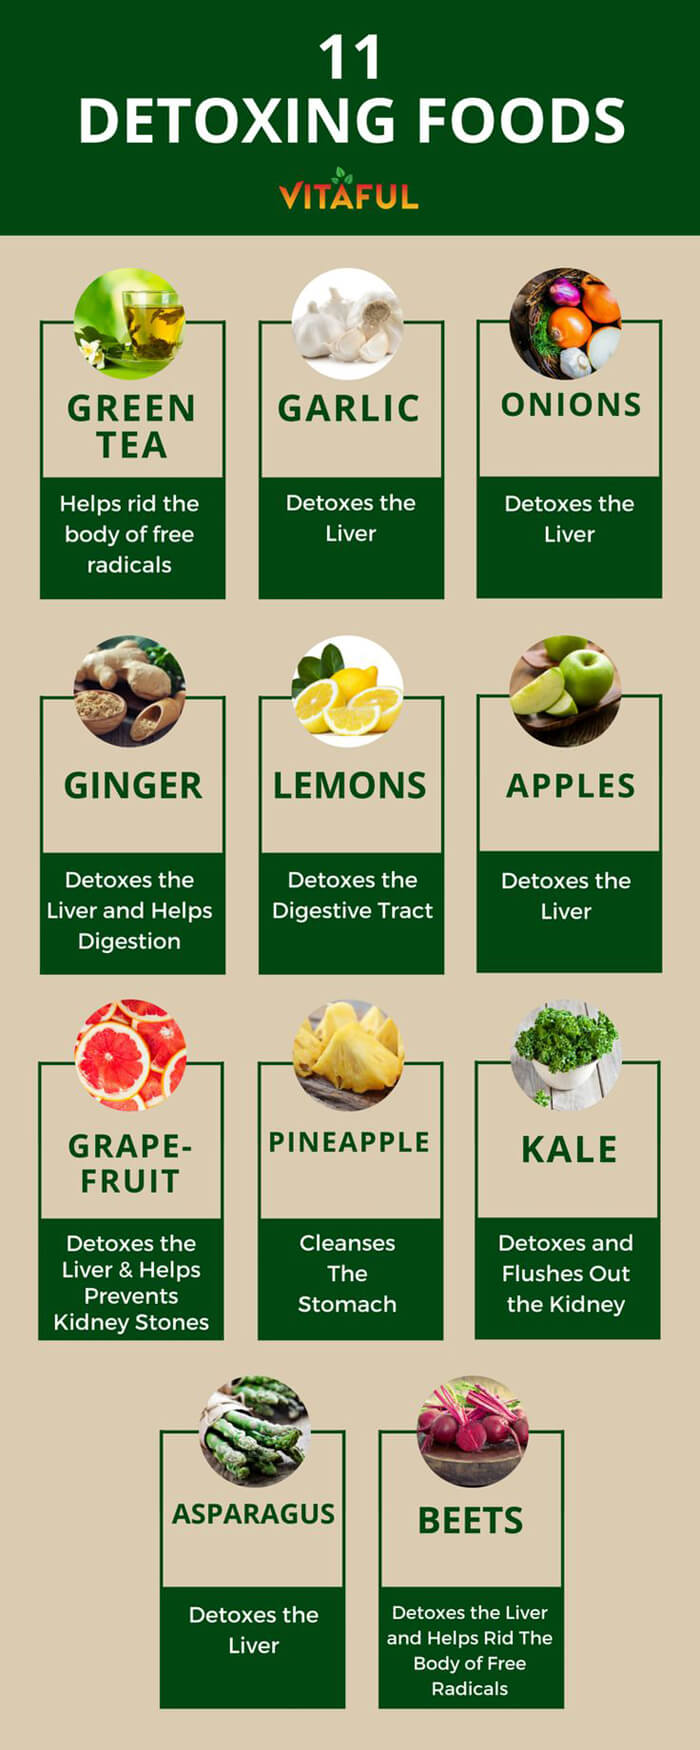 Detox vs. Cleanse - Their Differences and Benefits